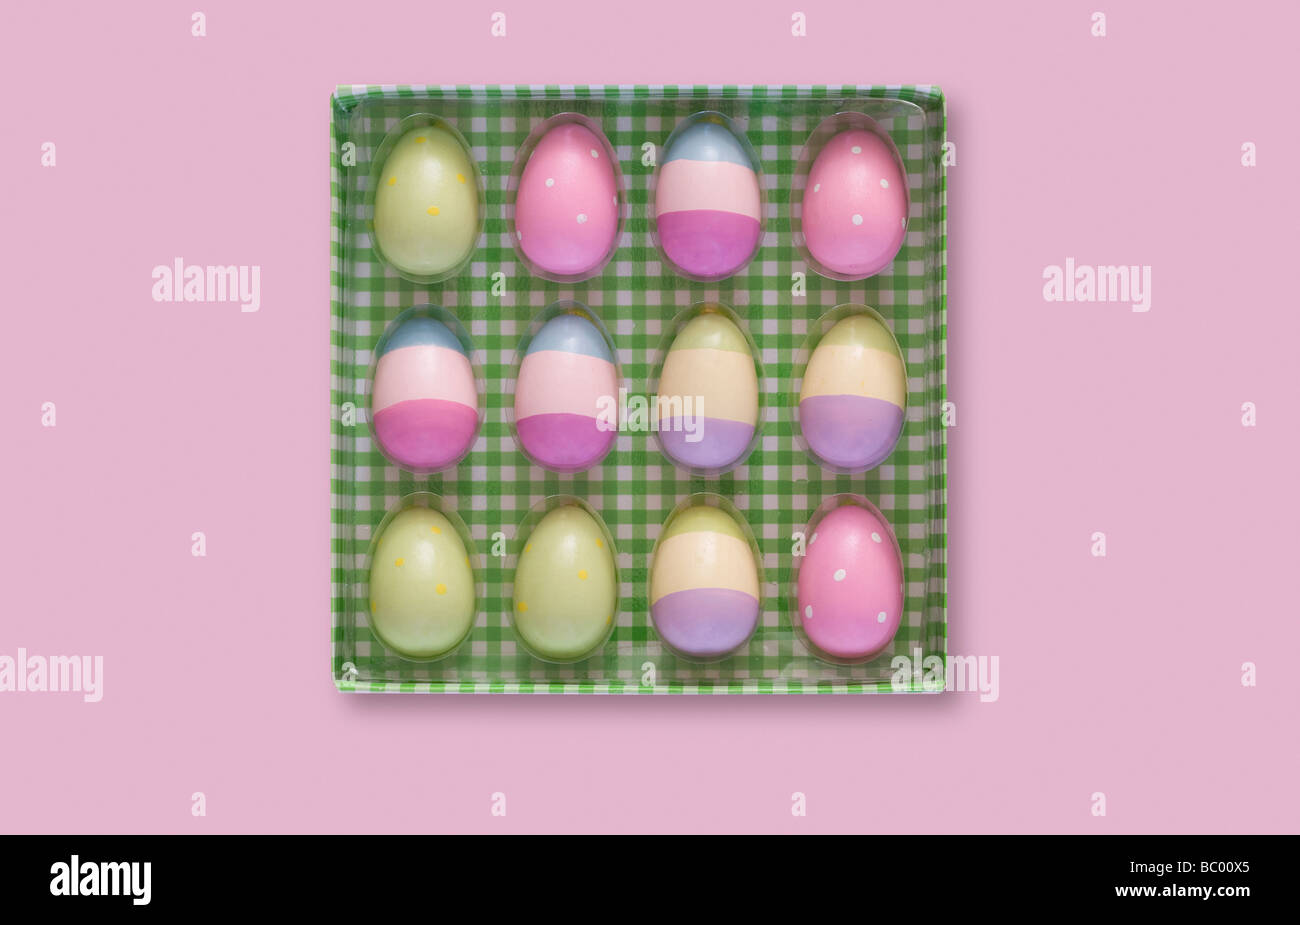 Box of colourful painted Easter eggs - Stock Image